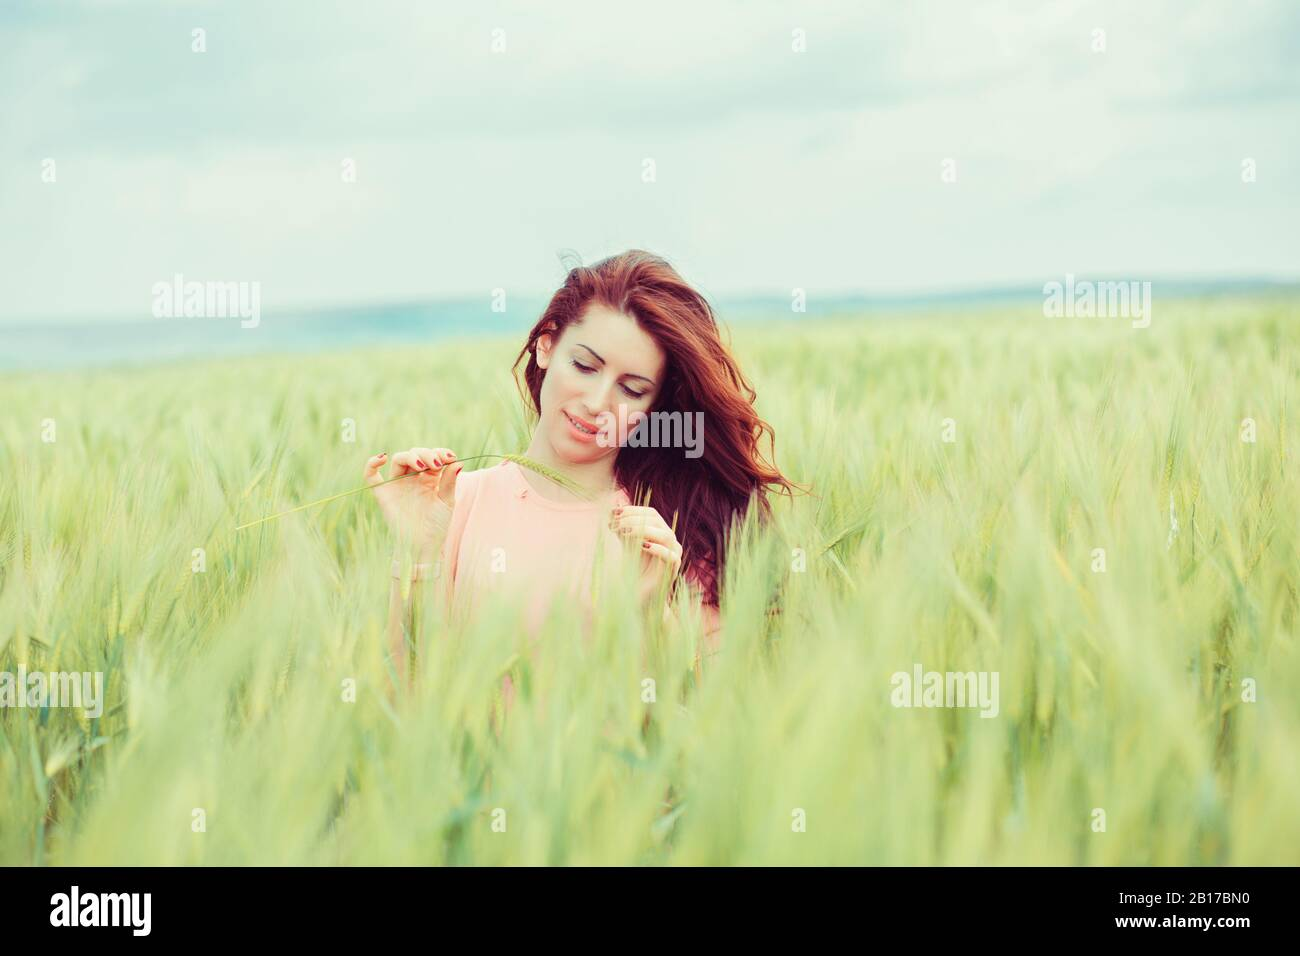 Enjoying Nature Beautiful Happy Woman Girl Outdoors On Green Wheat Field In Summer Nature Attractive Beauty Girl Outside In Nature Cute Stock Photo Alamy